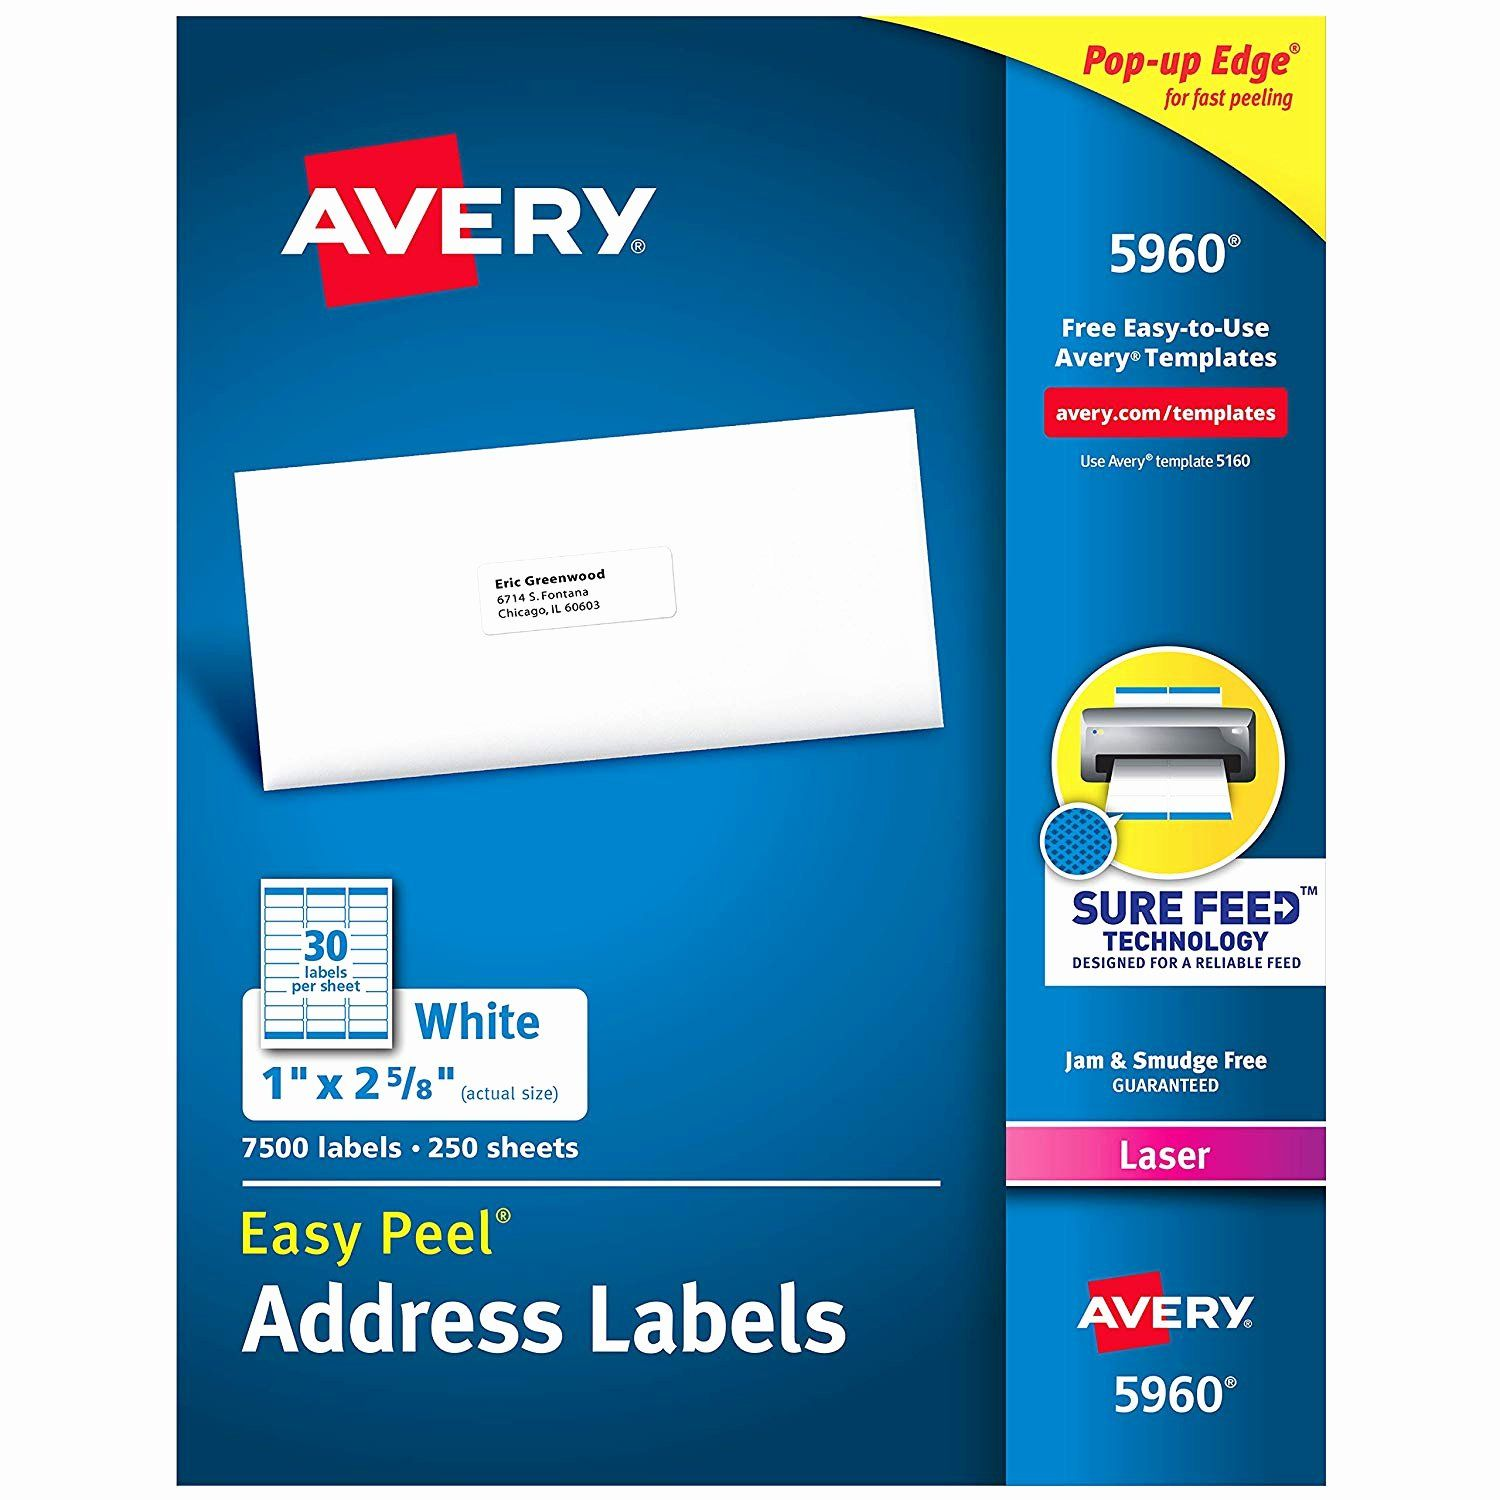 Avery Return Label Template